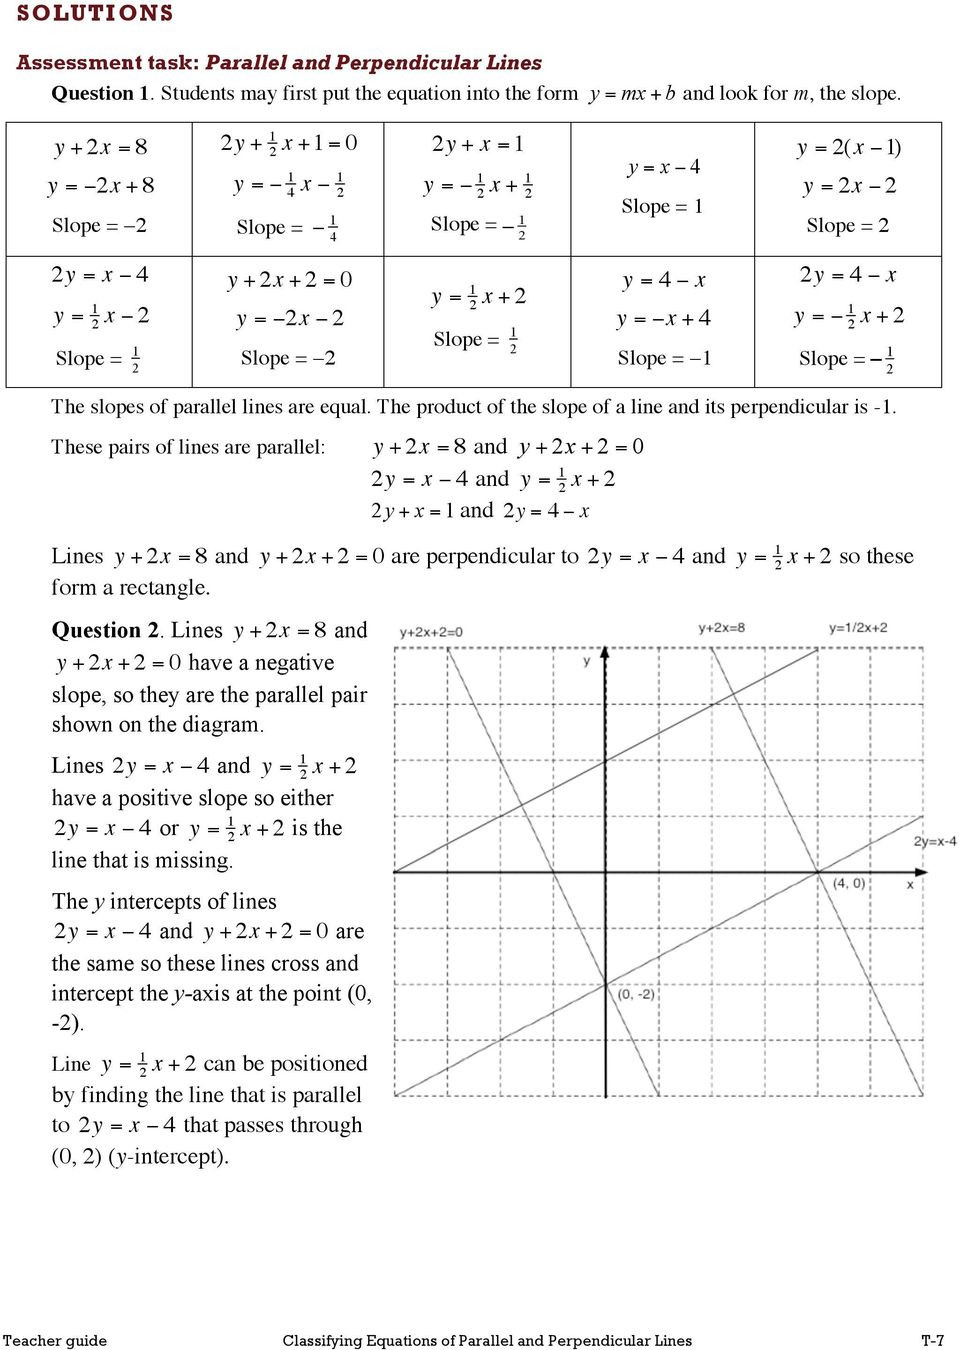 Parallel and Perpendicular Lines Worksheet Finding Equations Parallel and Perpendicular Lines